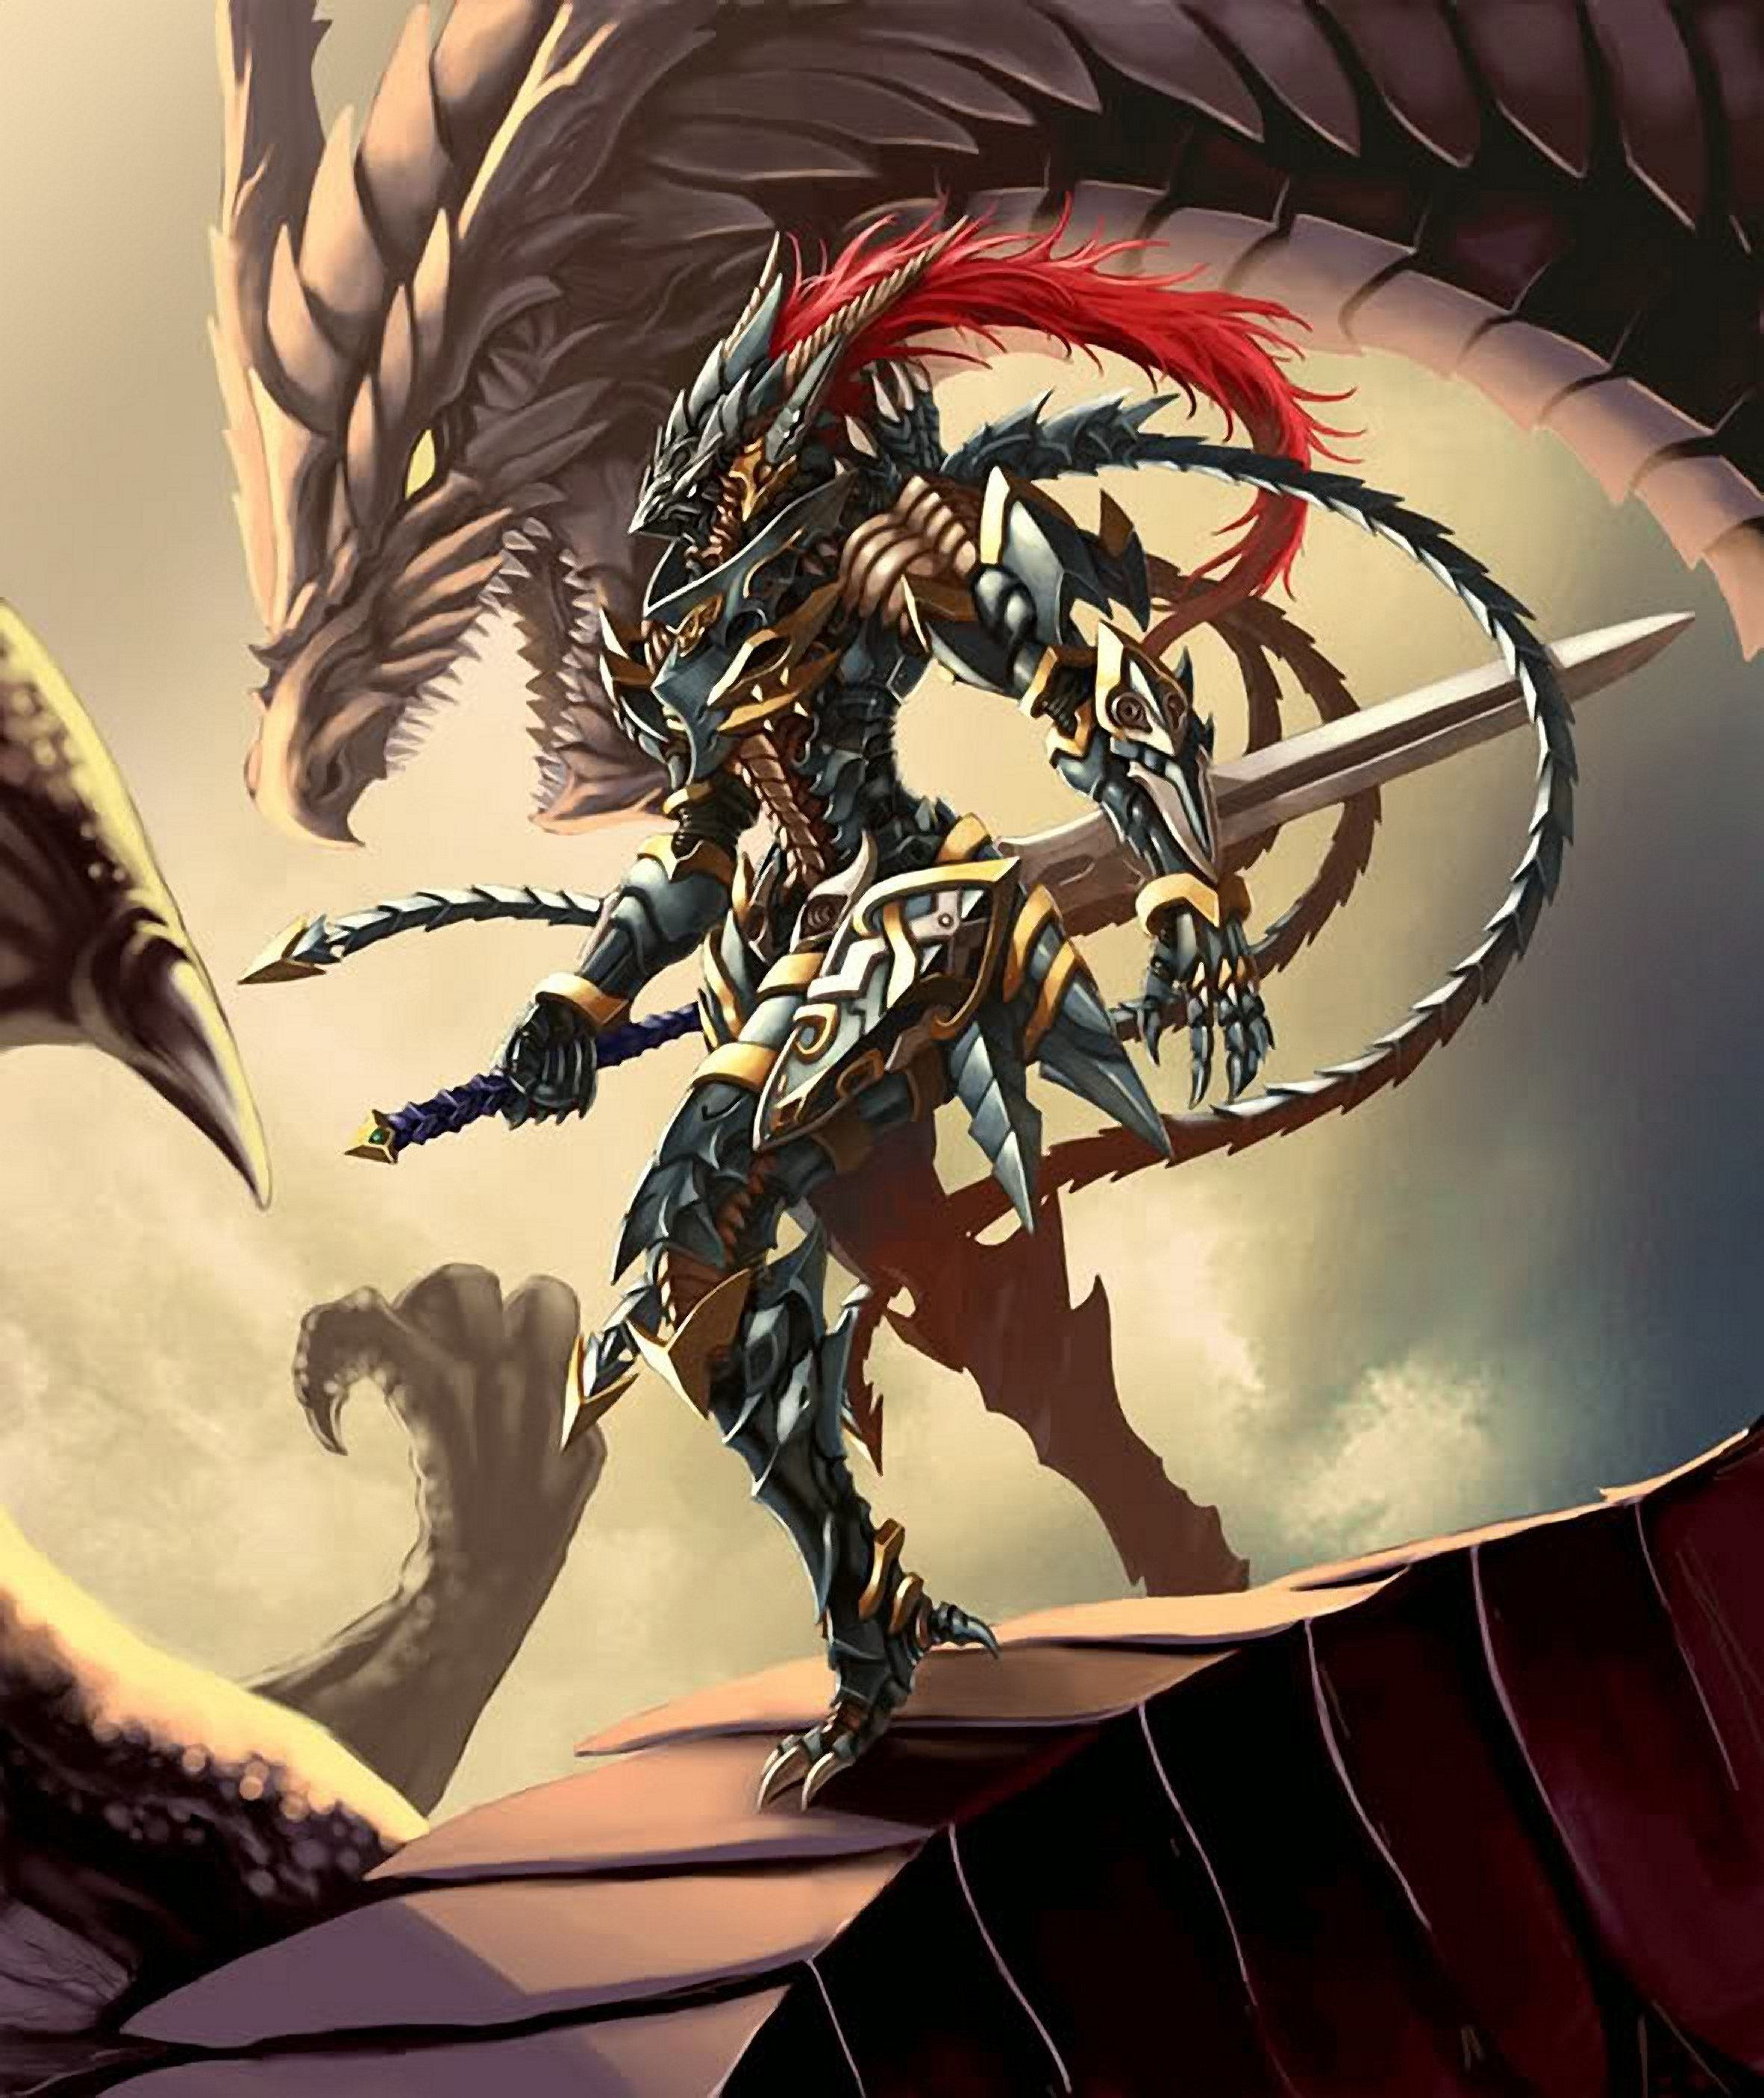 Dragon Armor Wallpaper / See more ideas about dragon armor, fantasy armor, armor.